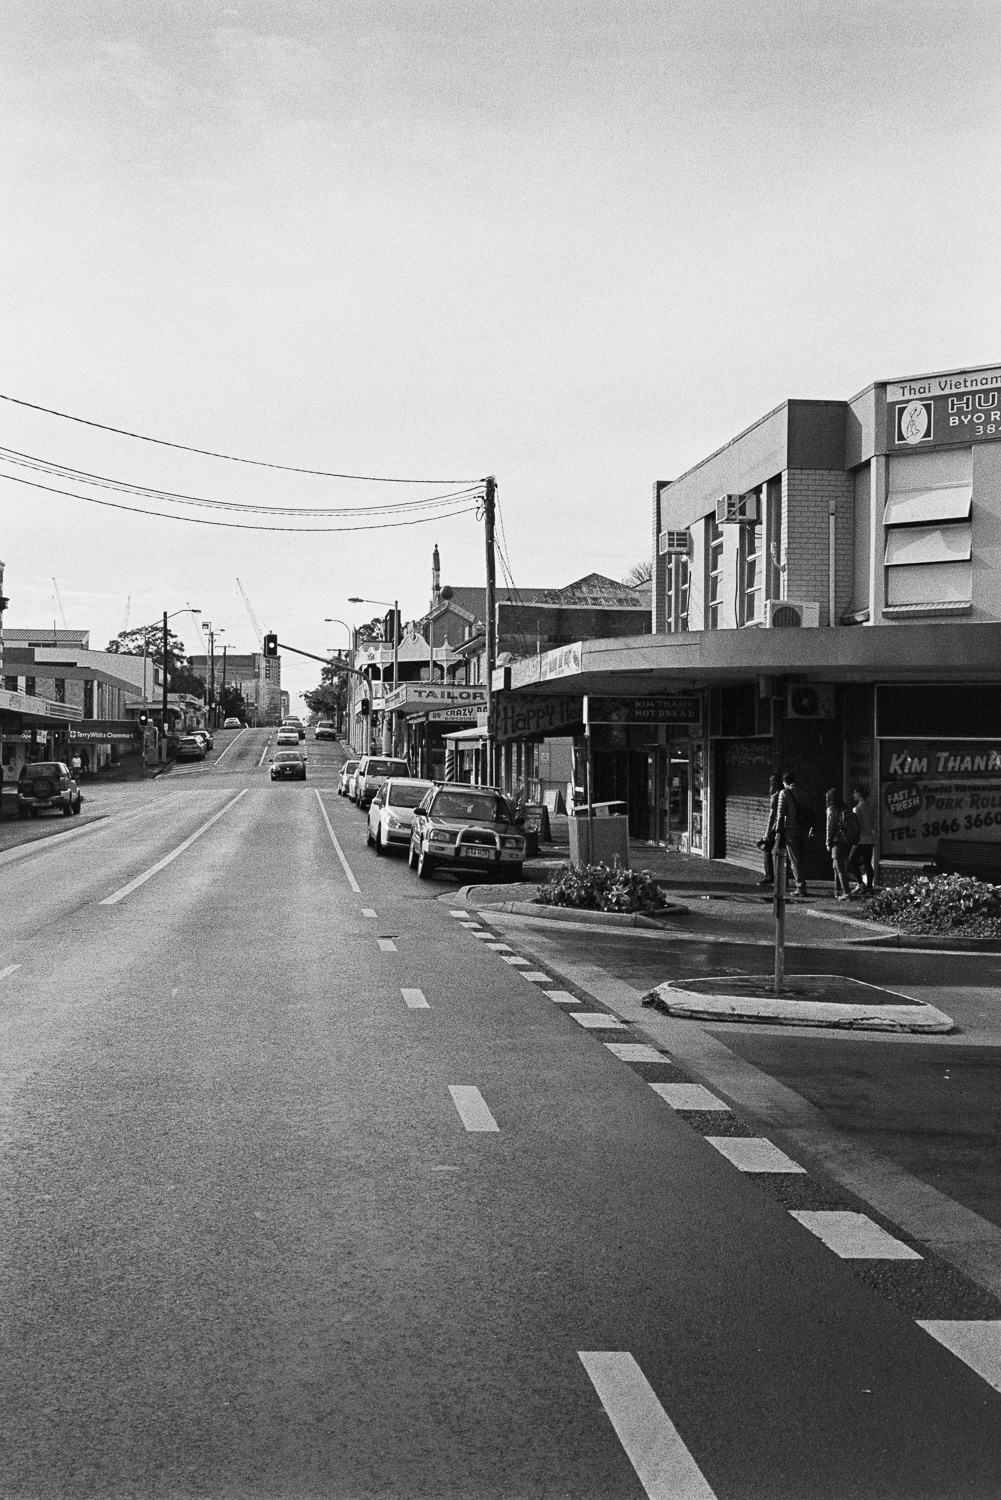 West End, my favourite country town stuck in the middle of a city.